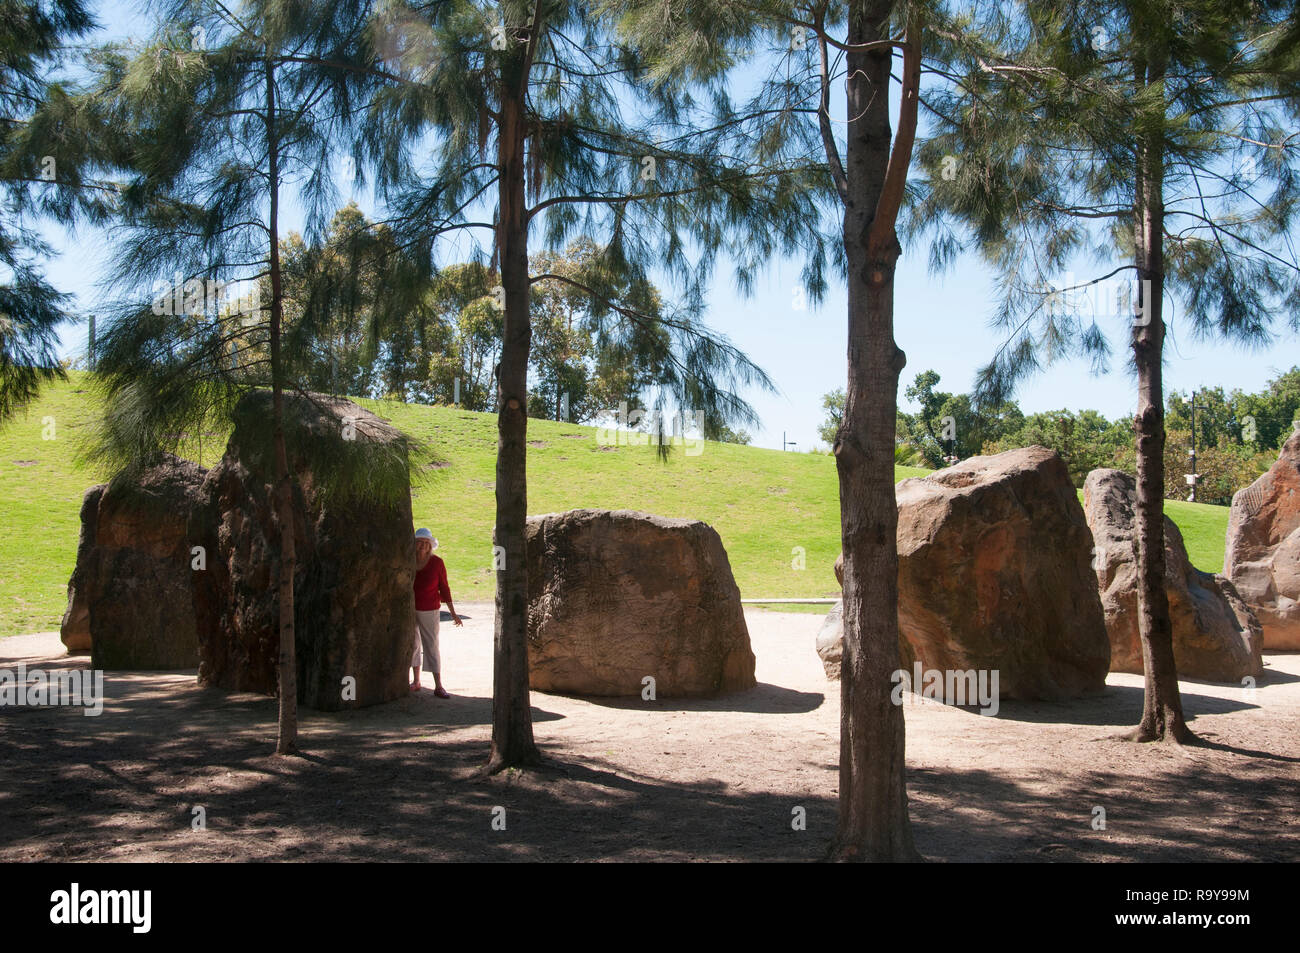 Large boulders at ArtPlay plaground in Birrarung Marr, an inner-city park between the CBD and the Yarra River, Melbourne, Australia. - Stock Image